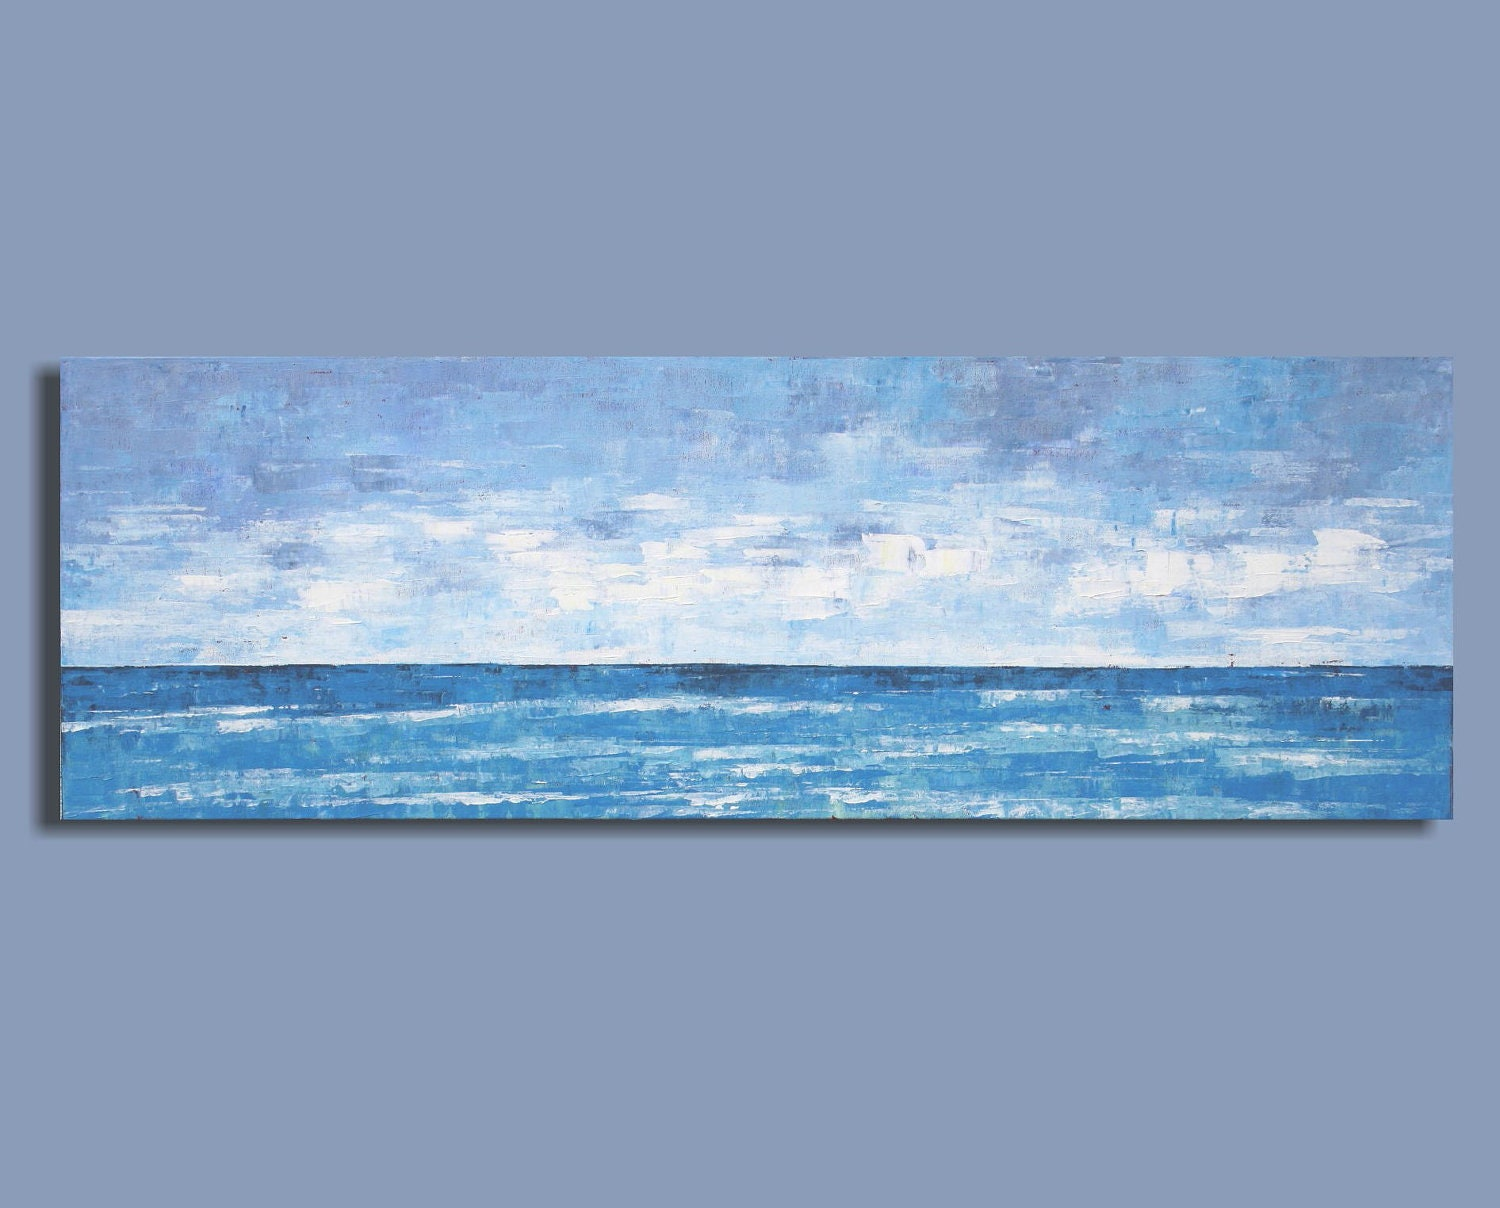 Abstract Ocean Painting Panorama in Blue Waves Roll In